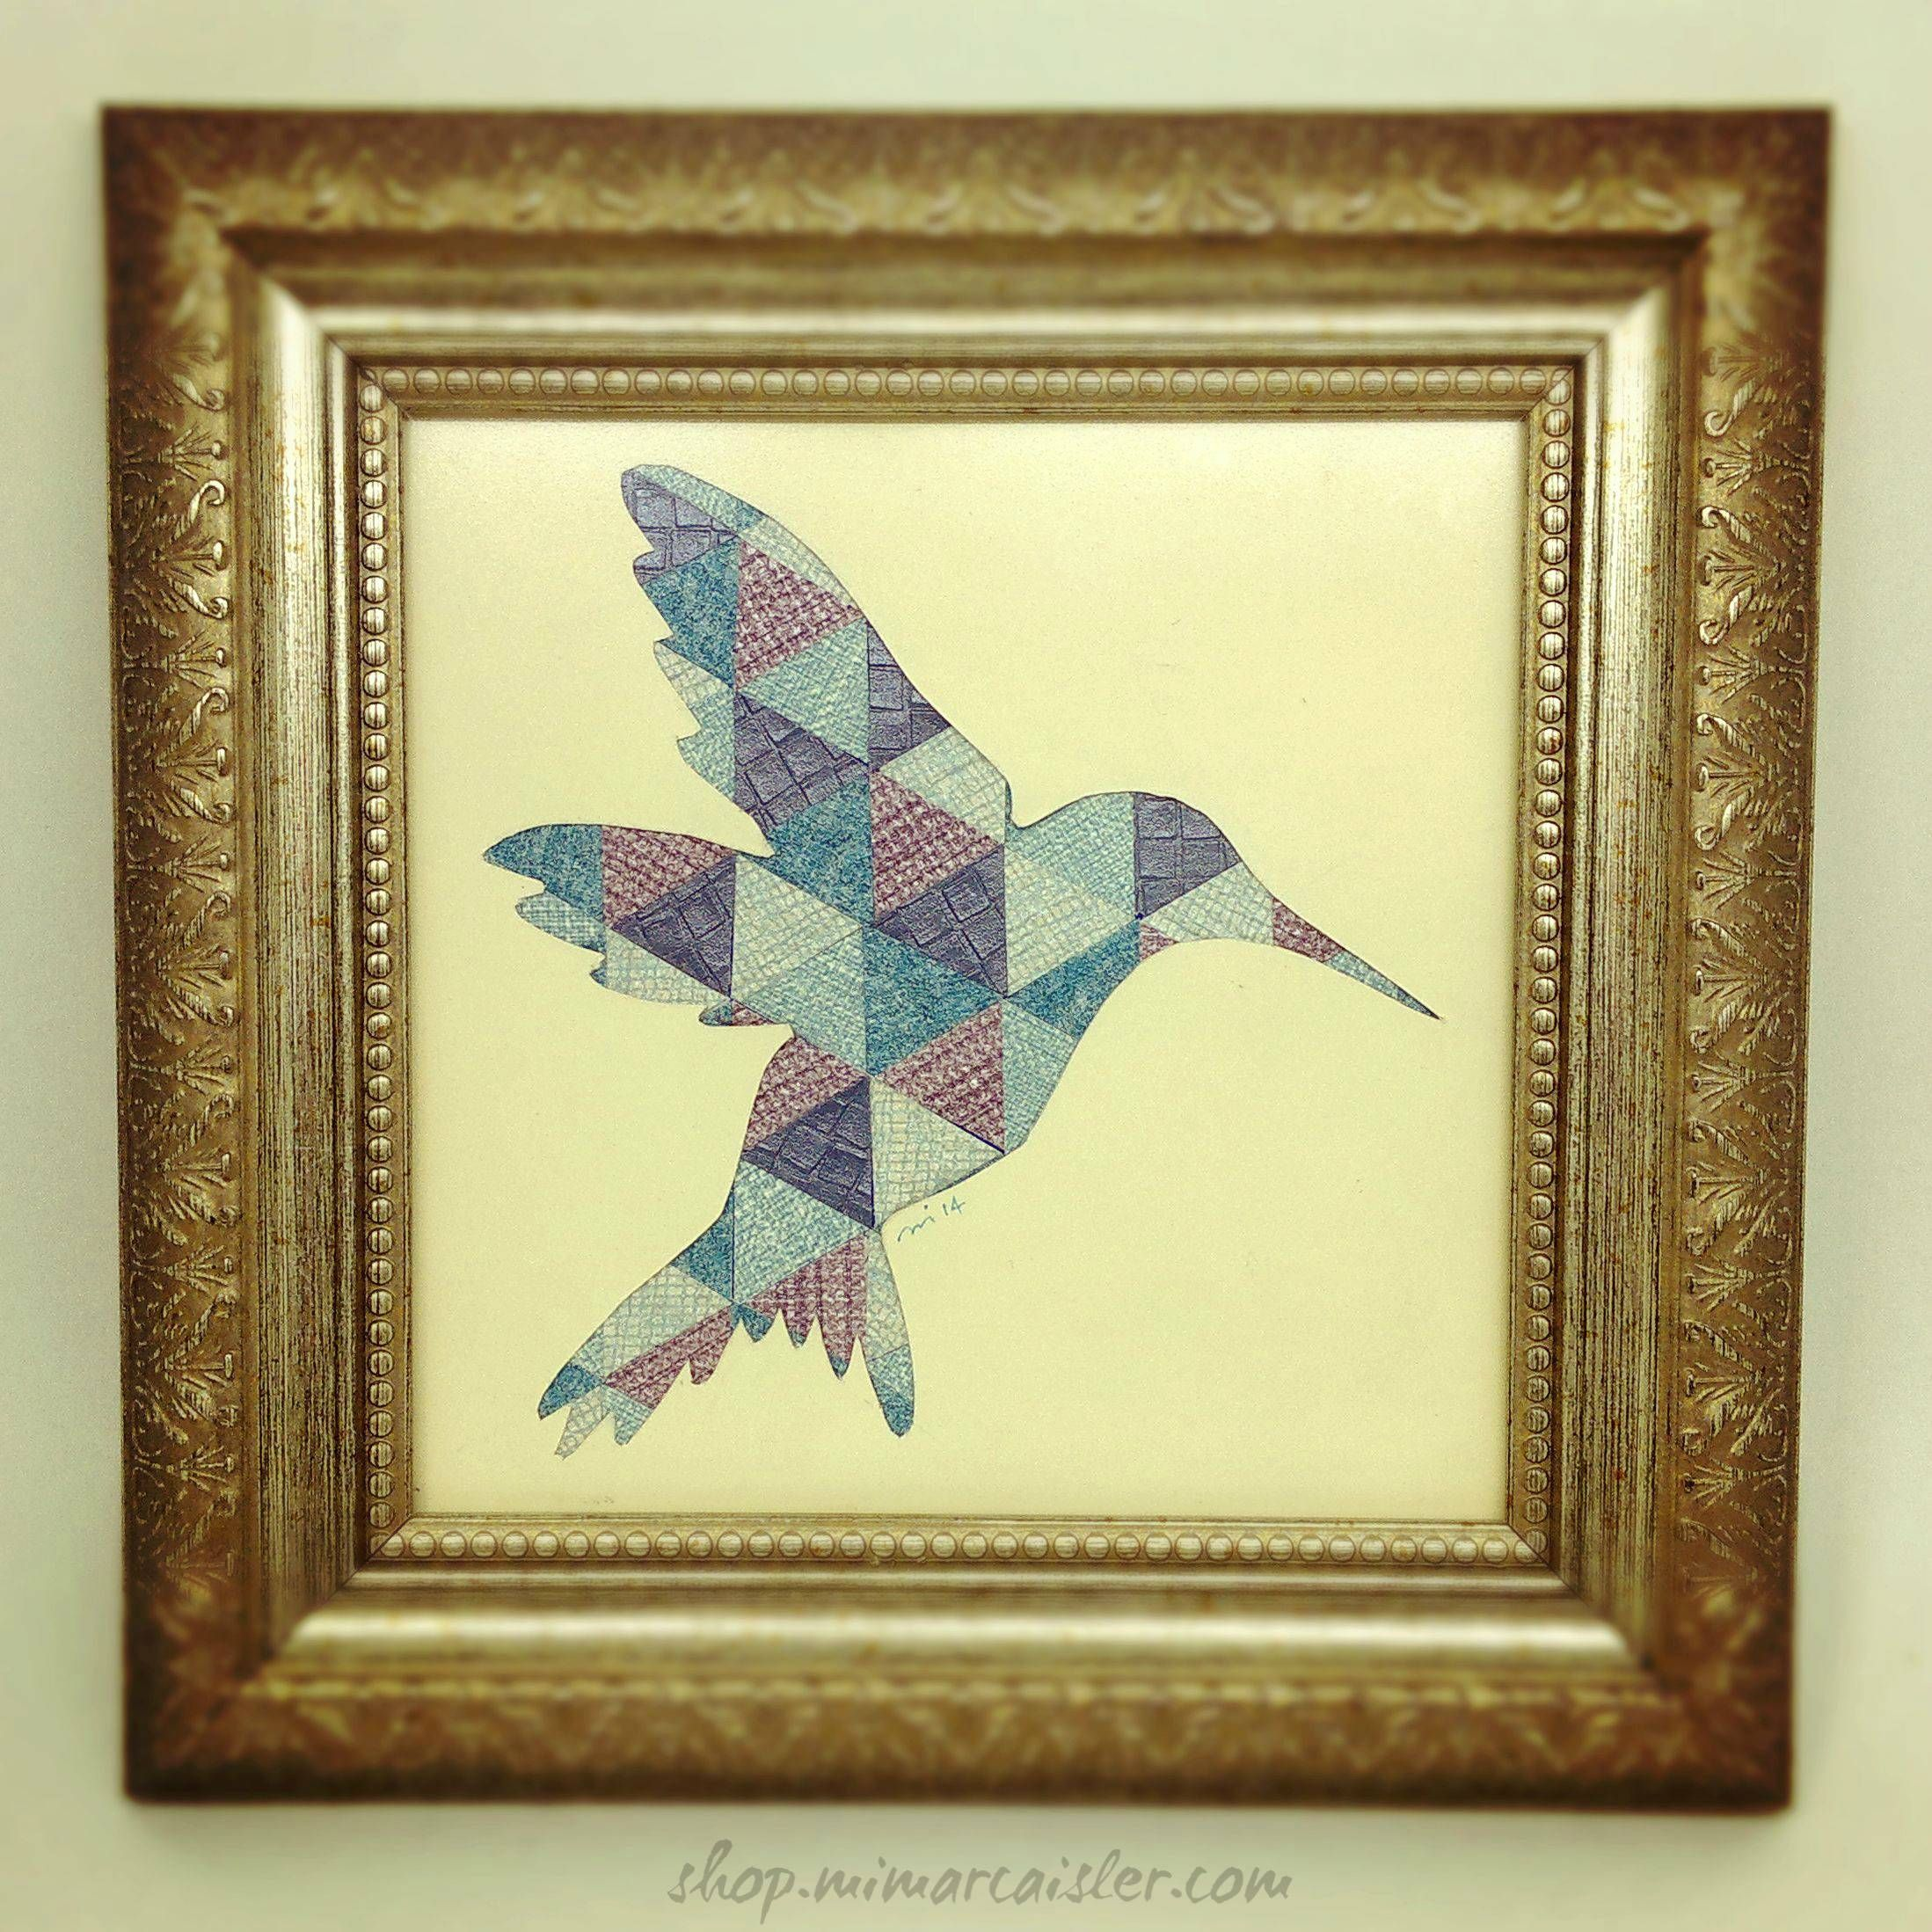 Blue Bird Paper Collage Art Wall Decor | Instagood, Paper collages ...